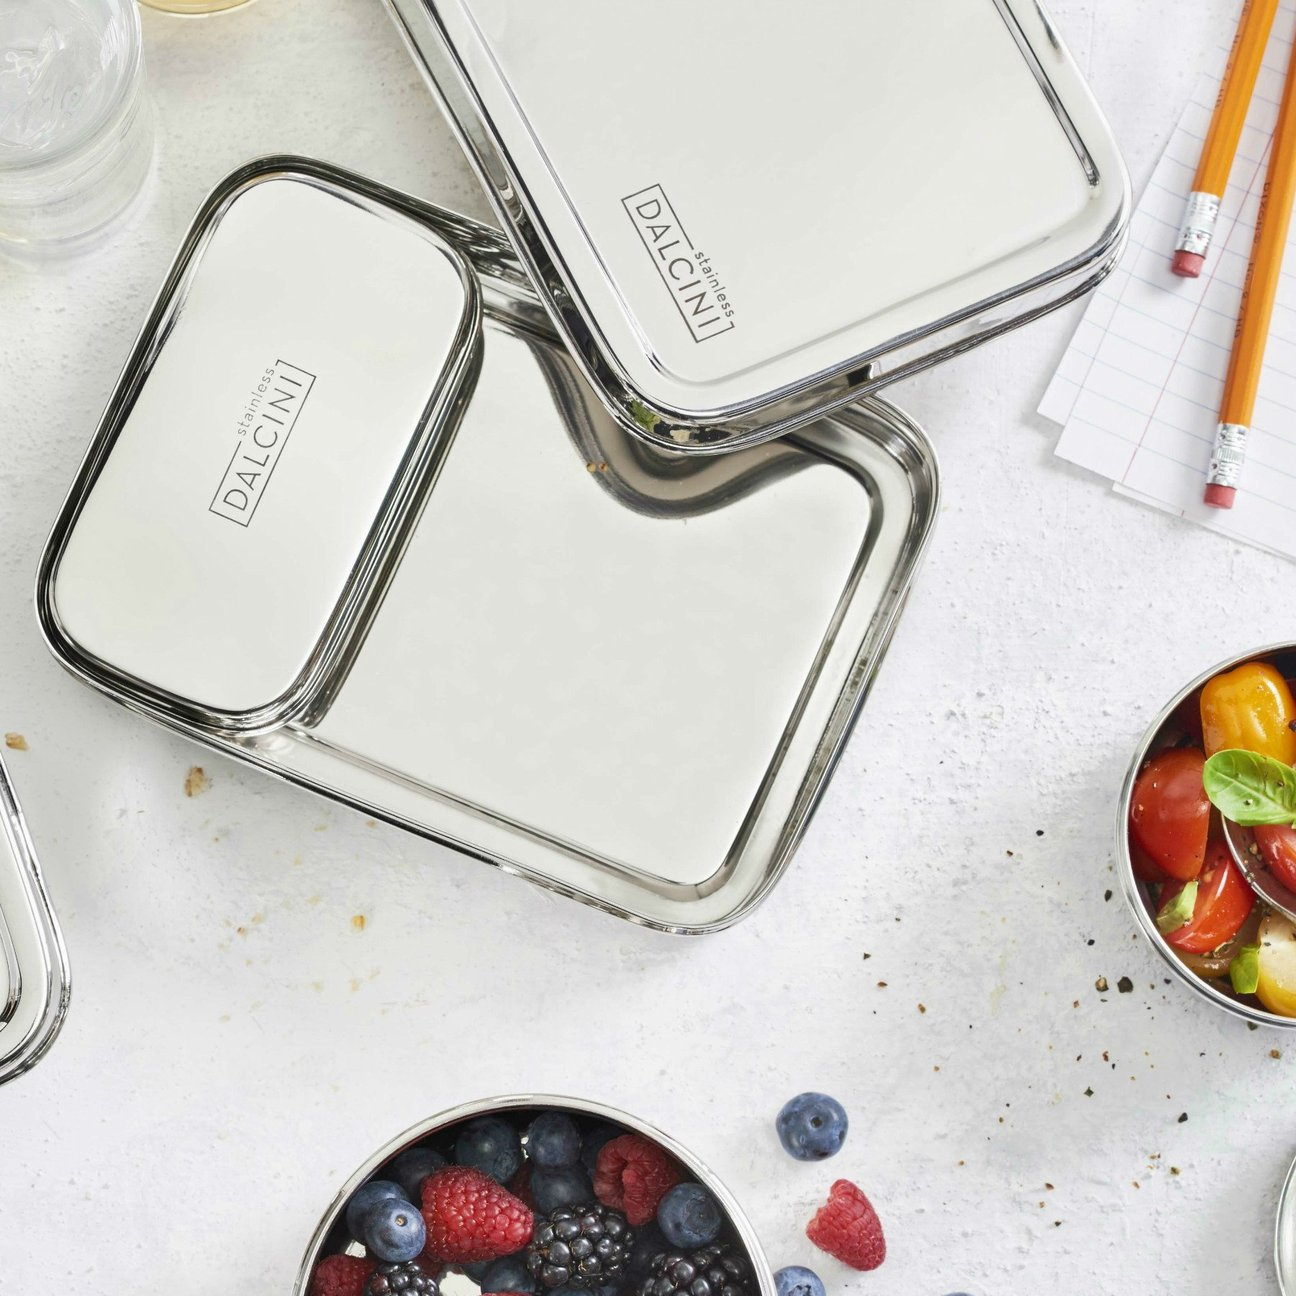 Dalcini 2-piece Lunch Set